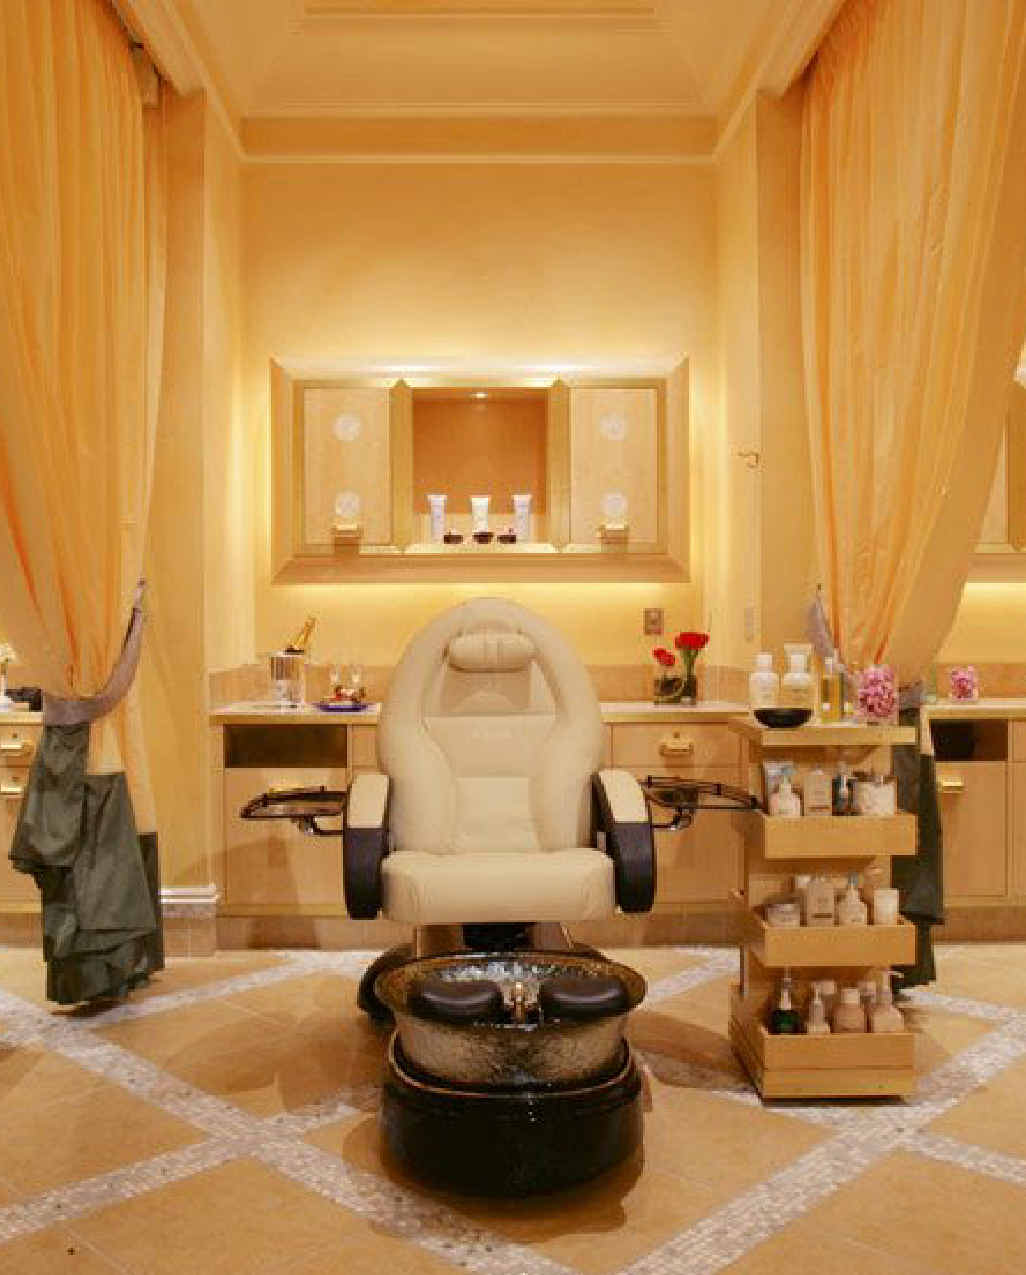 The deluxe pedicre rooms at Spa Bellagio.